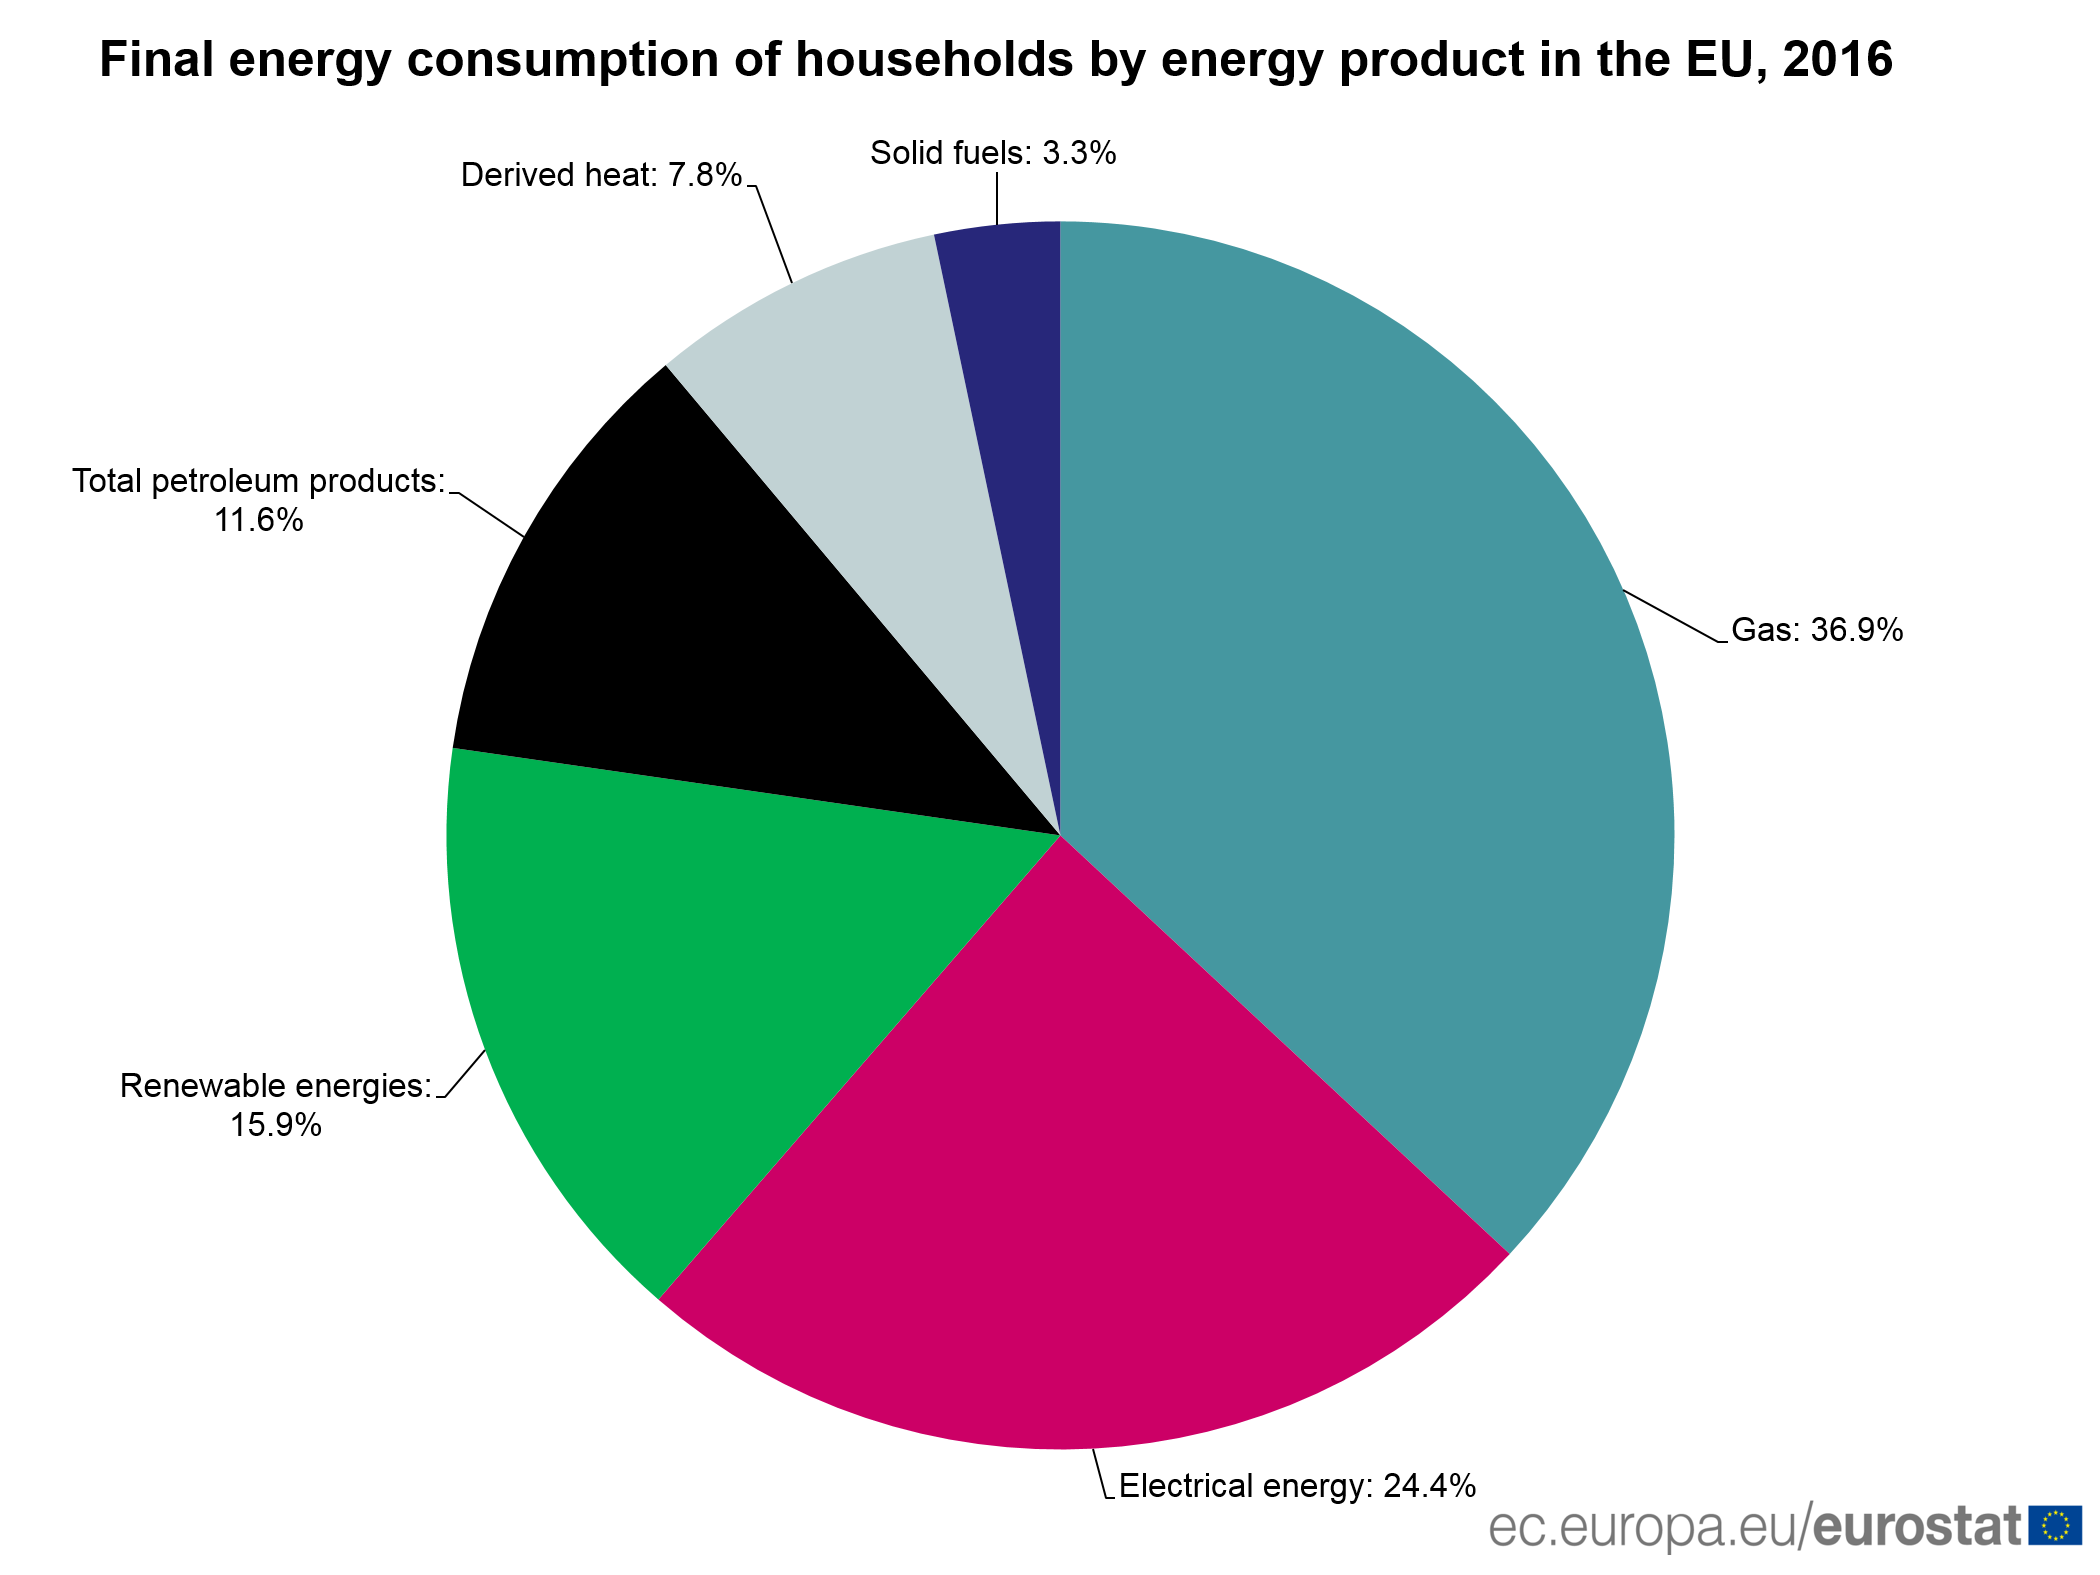 Energy consumption of households by energy product